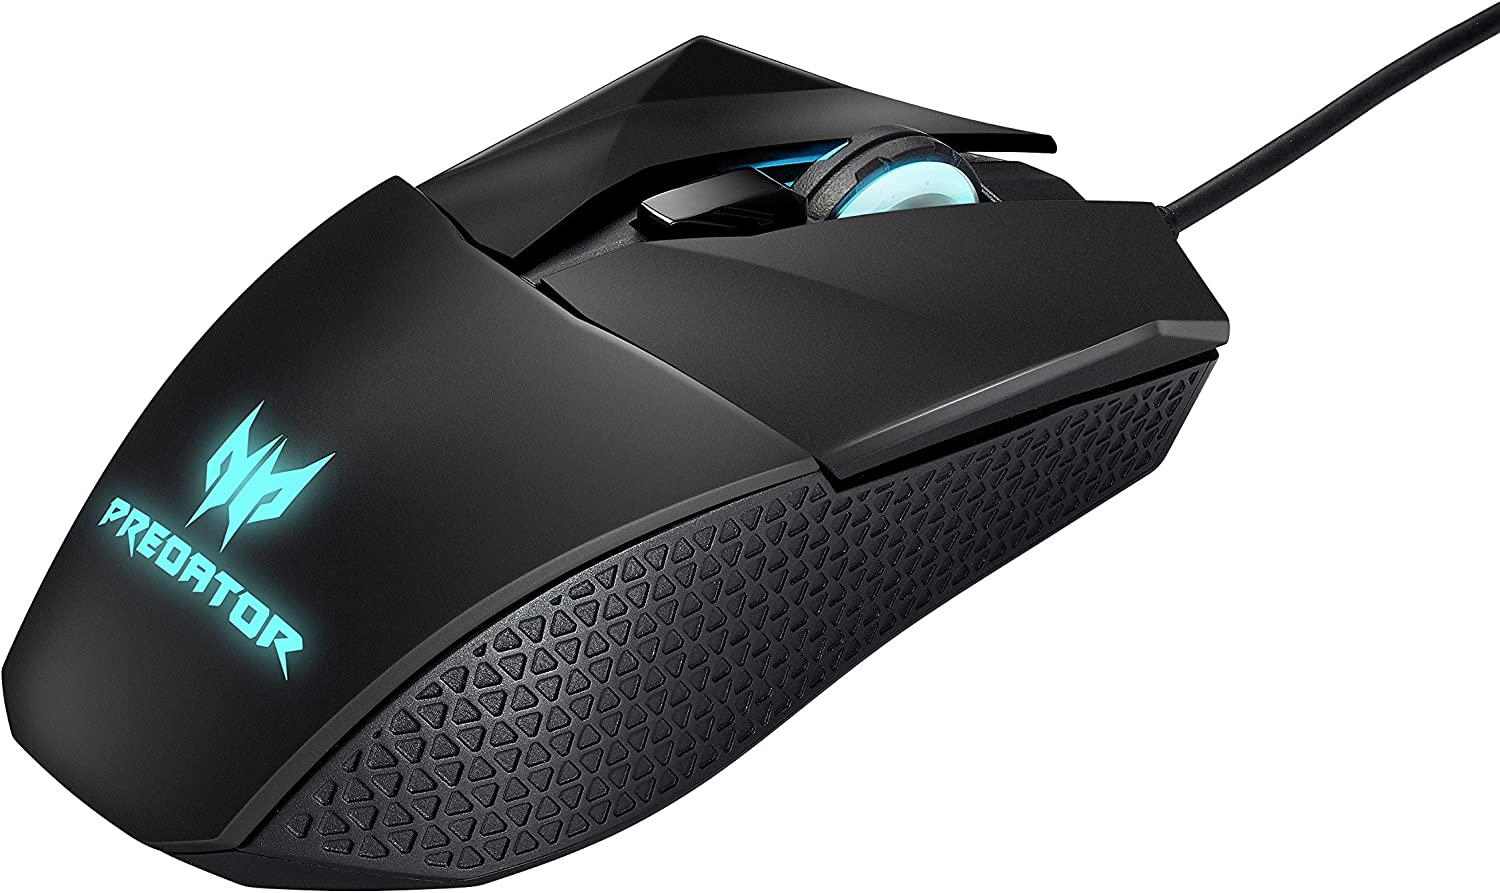 Acer Predator Cestus 300 RGB Gaming Mouse – Dual Omron switches 70M click lifetime, On board memory and programmable buttons